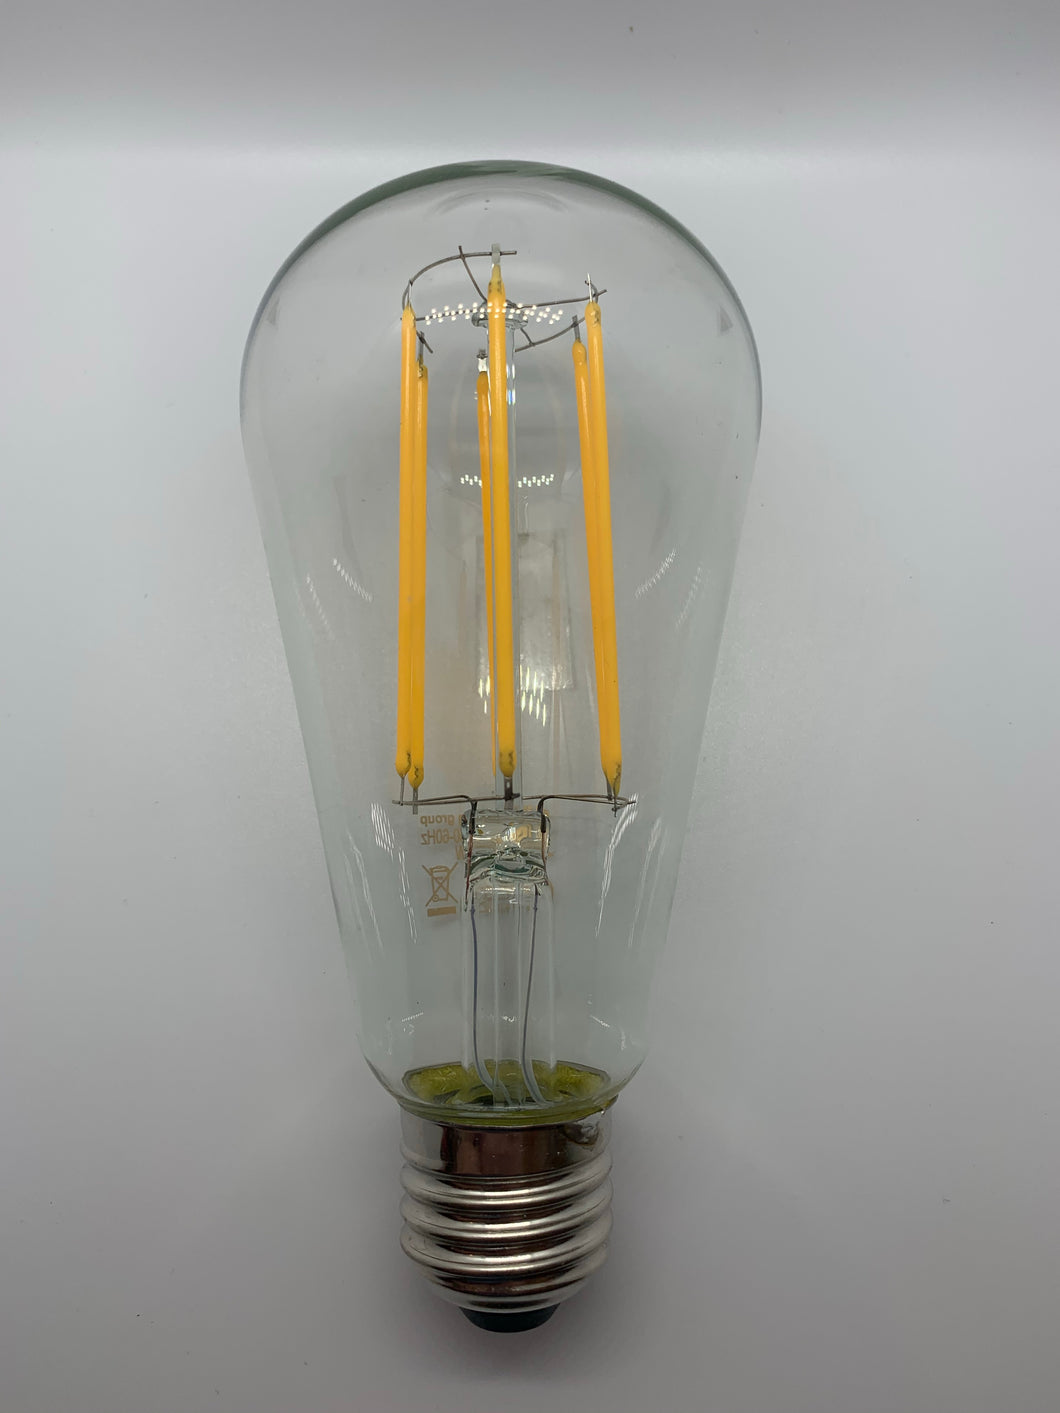 7w ES/E27 Warmwhite 2700k Dimmable